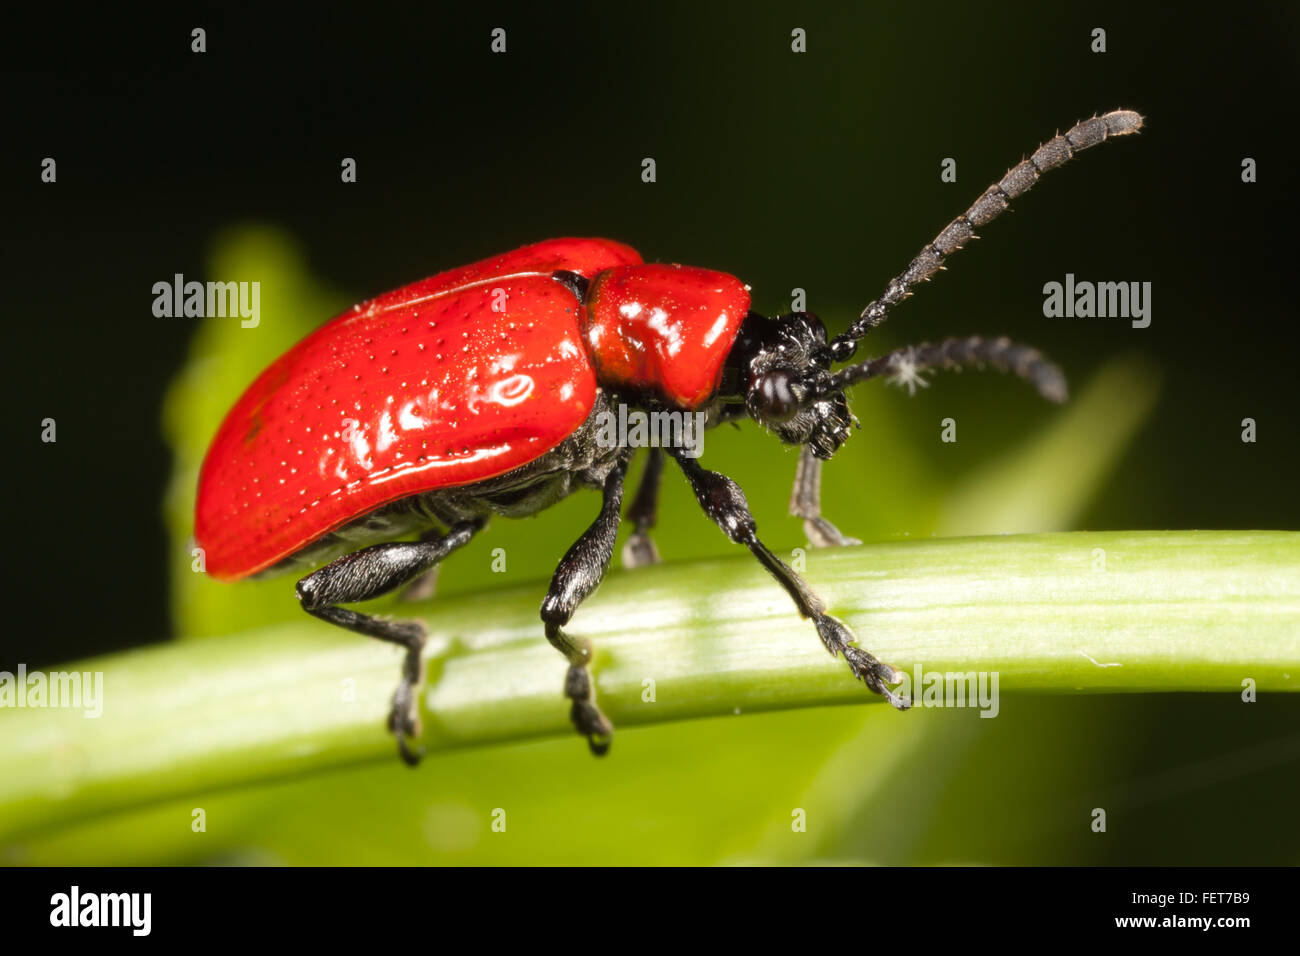 A Lily Leaf Beetle (Lilioceris lilii) perches on a plant stem. - Stock Image